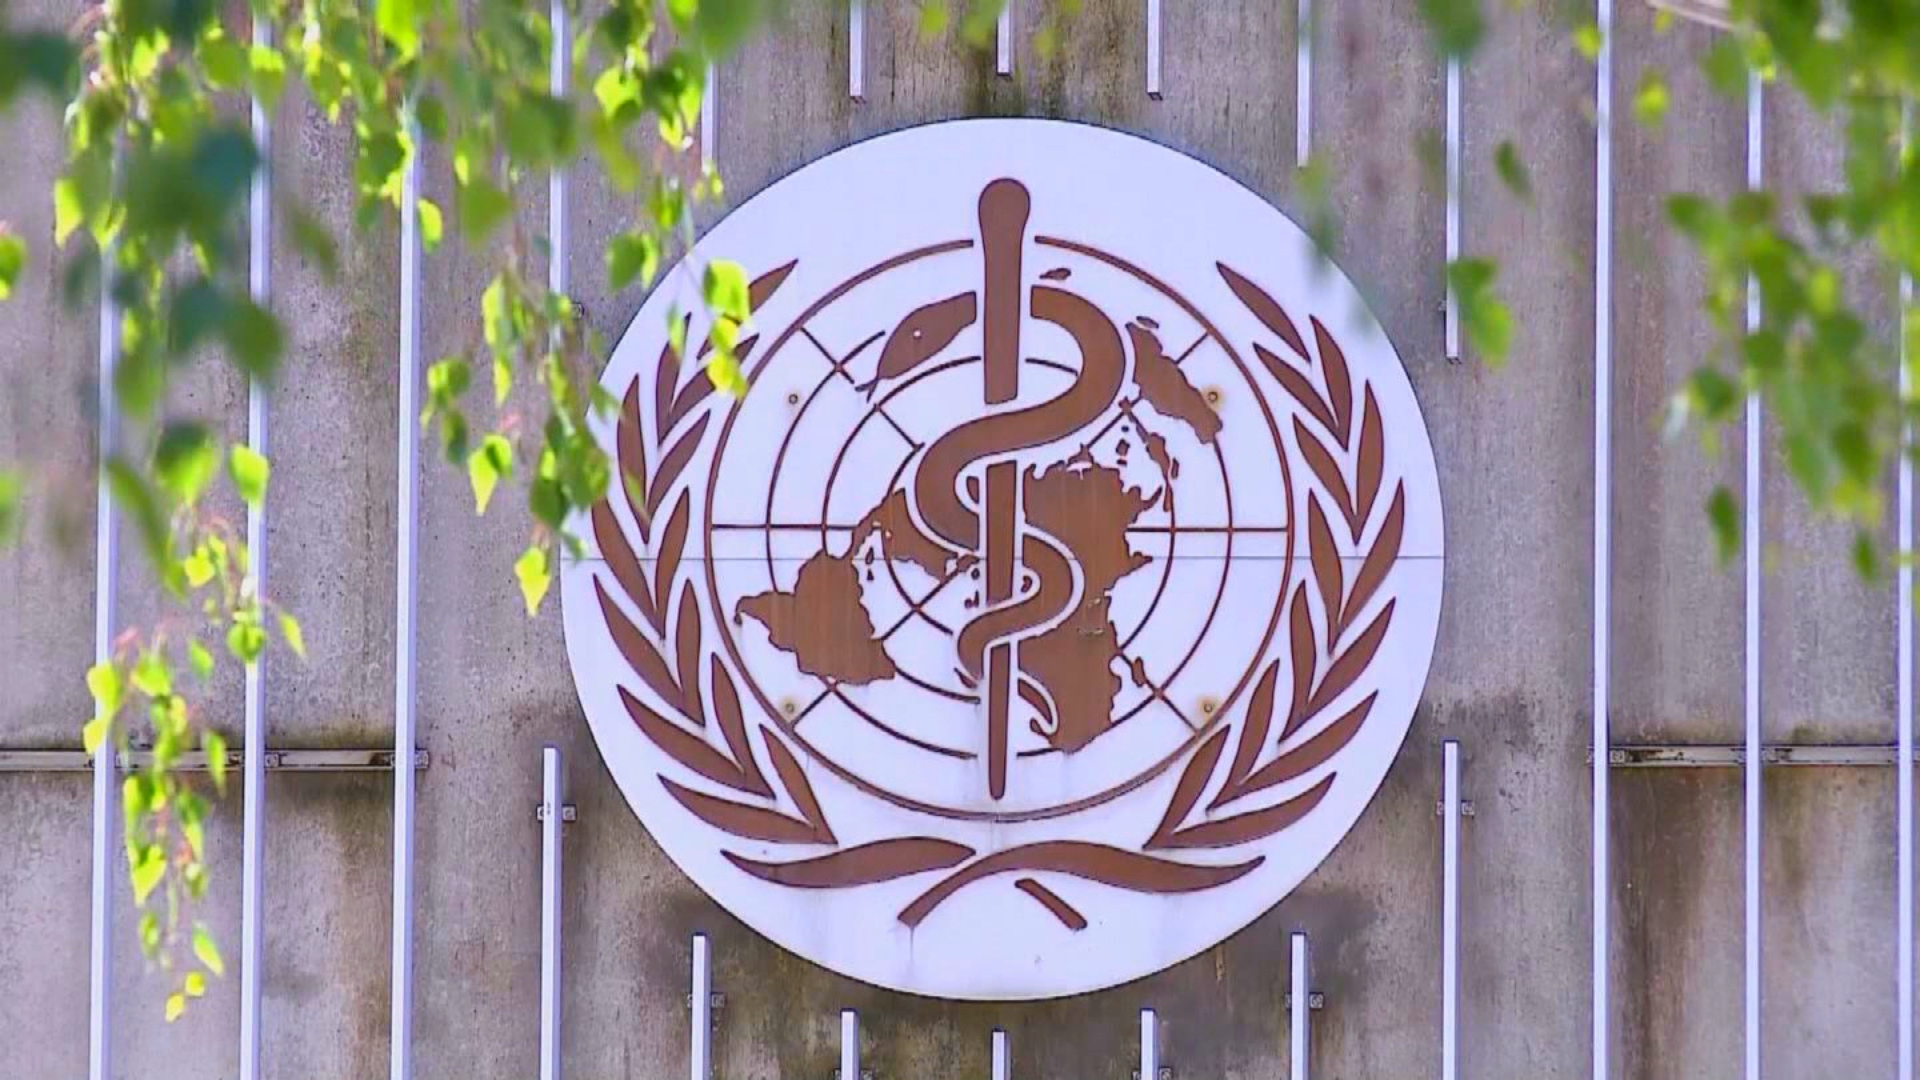 WHO releases new International Classification of Diseases as known as ICD-11